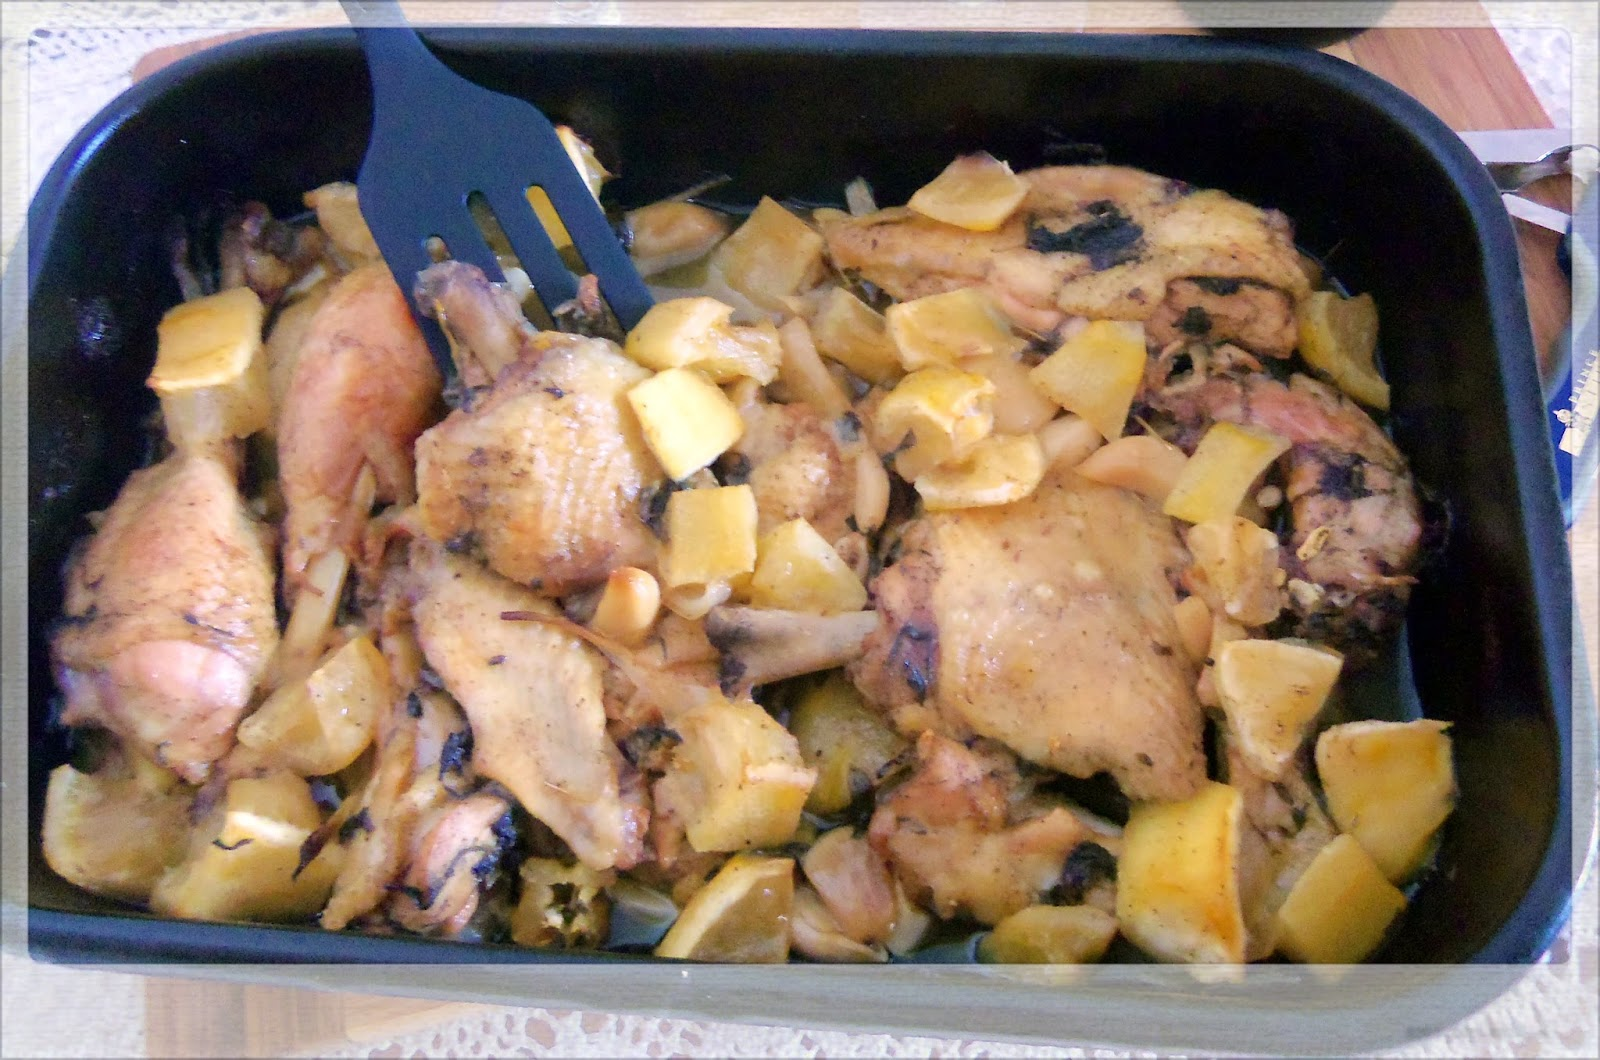 You've Got Meal!: Lemon and Garlic Chicken- Slow Roasted Goodness